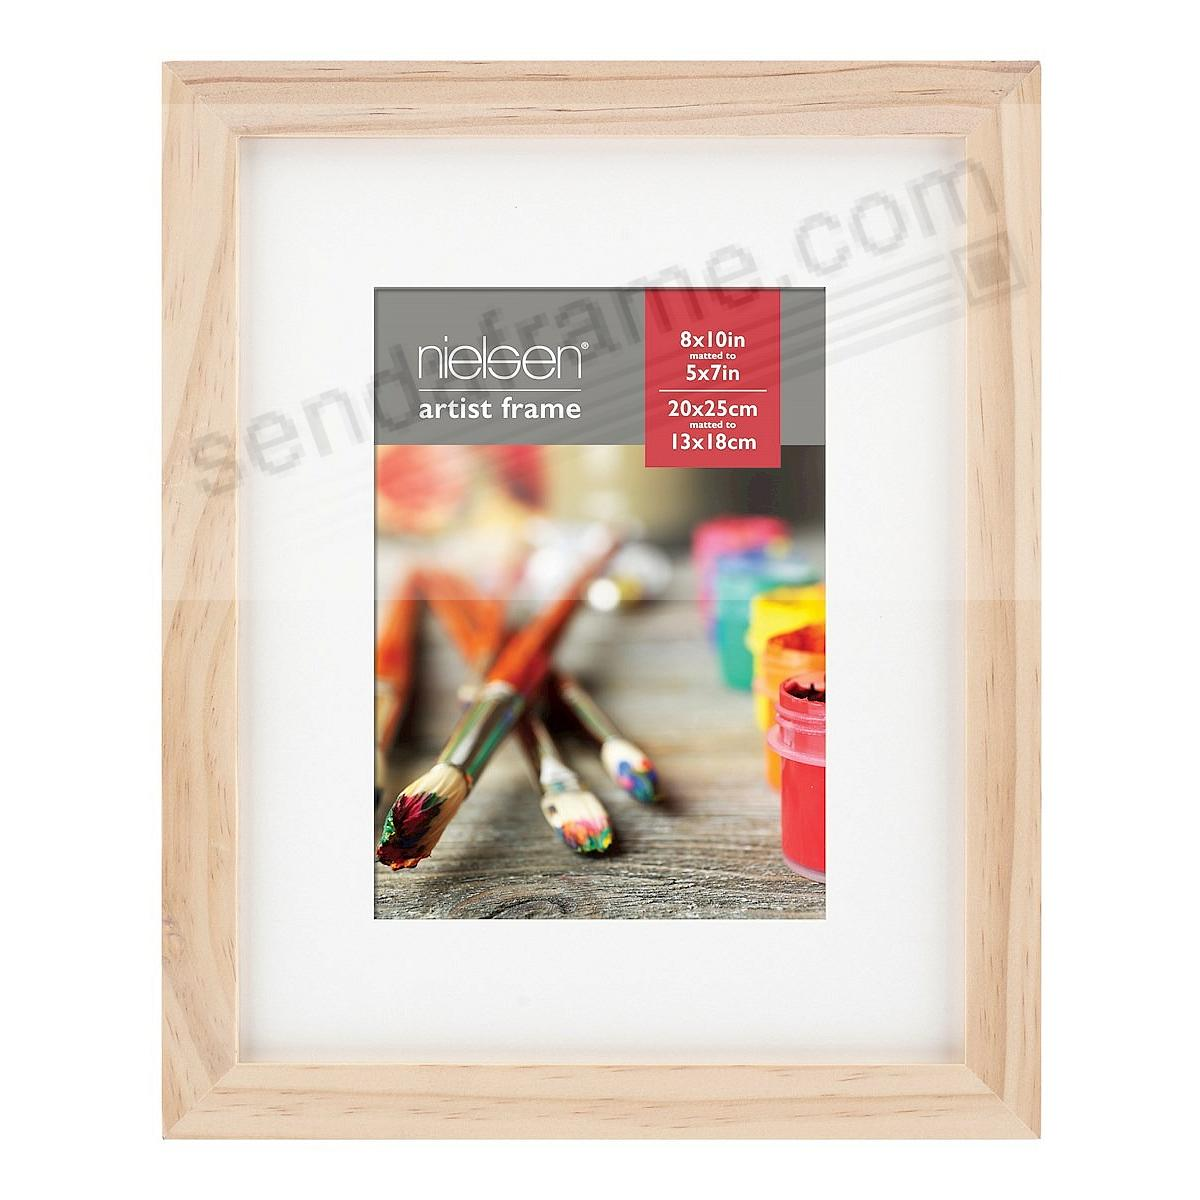 ash natural gallery canvas depth matted wood frame 8x10 5x7 by